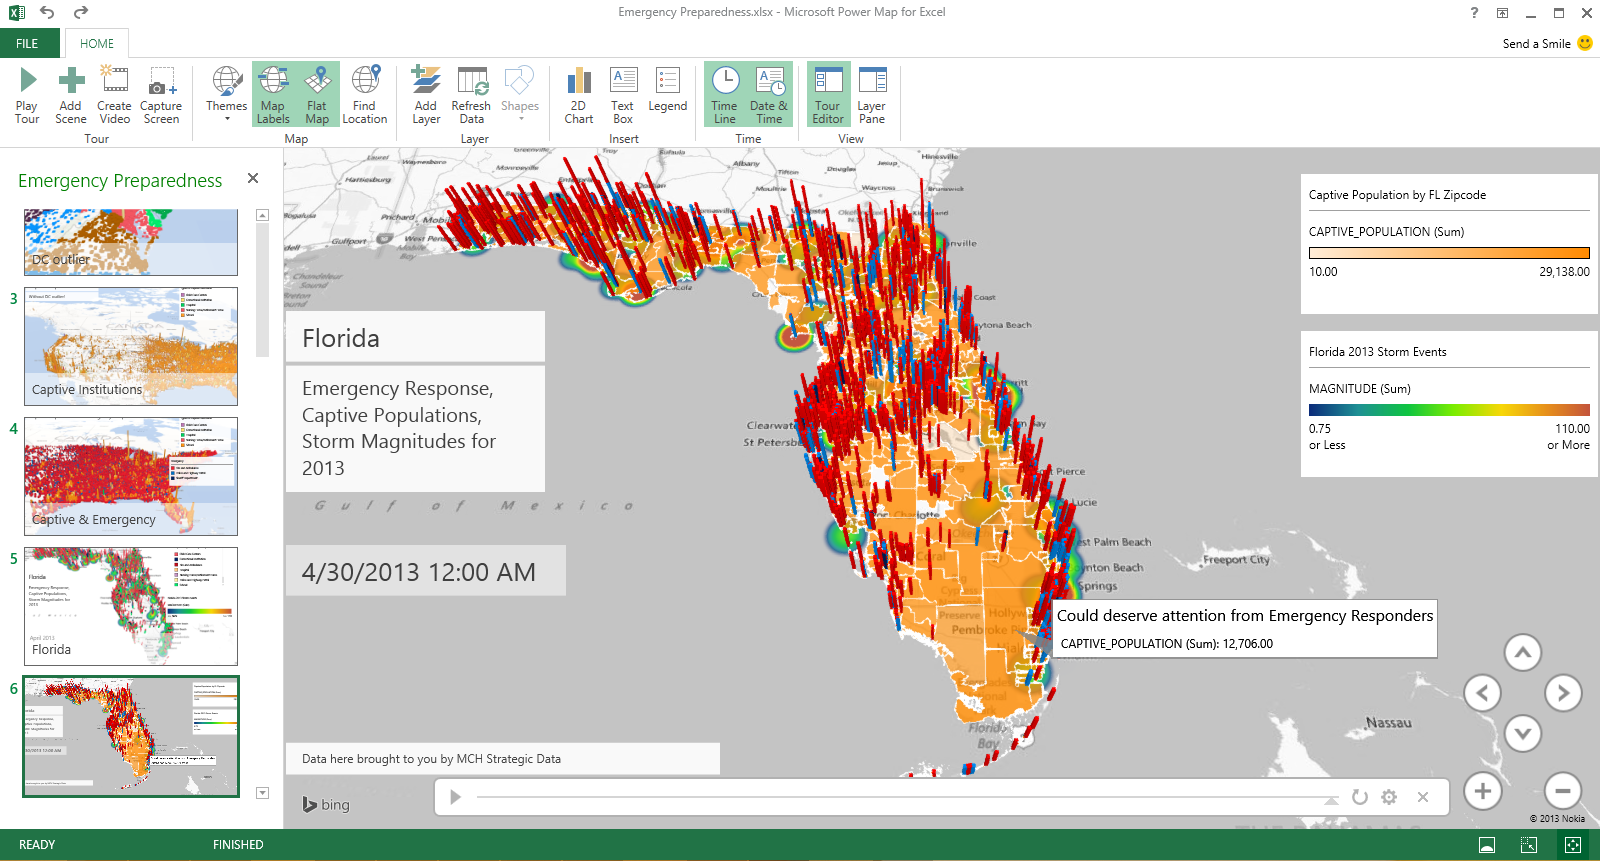 Ediblewildsus  Winning Power Map For Excel Now Generally Available Automatically Updated  With Glamorous Power Map For Excel Now Generally Available Automatically Updated For Office  With Amusing Excel Conditional Formatting Dates Also Difference Between Access And Excel In Addition Excel D Plot And Irr On Excel As Well As Powershell Export To Excel Additionally Comparing Two Lists In Excel From Powerbimicrosoftcom With Ediblewildsus  Glamorous Power Map For Excel Now Generally Available Automatically Updated  With Amusing Power Map For Excel Now Generally Available Automatically Updated For Office  And Winning Excel Conditional Formatting Dates Also Difference Between Access And Excel In Addition Excel D Plot From Powerbimicrosoftcom